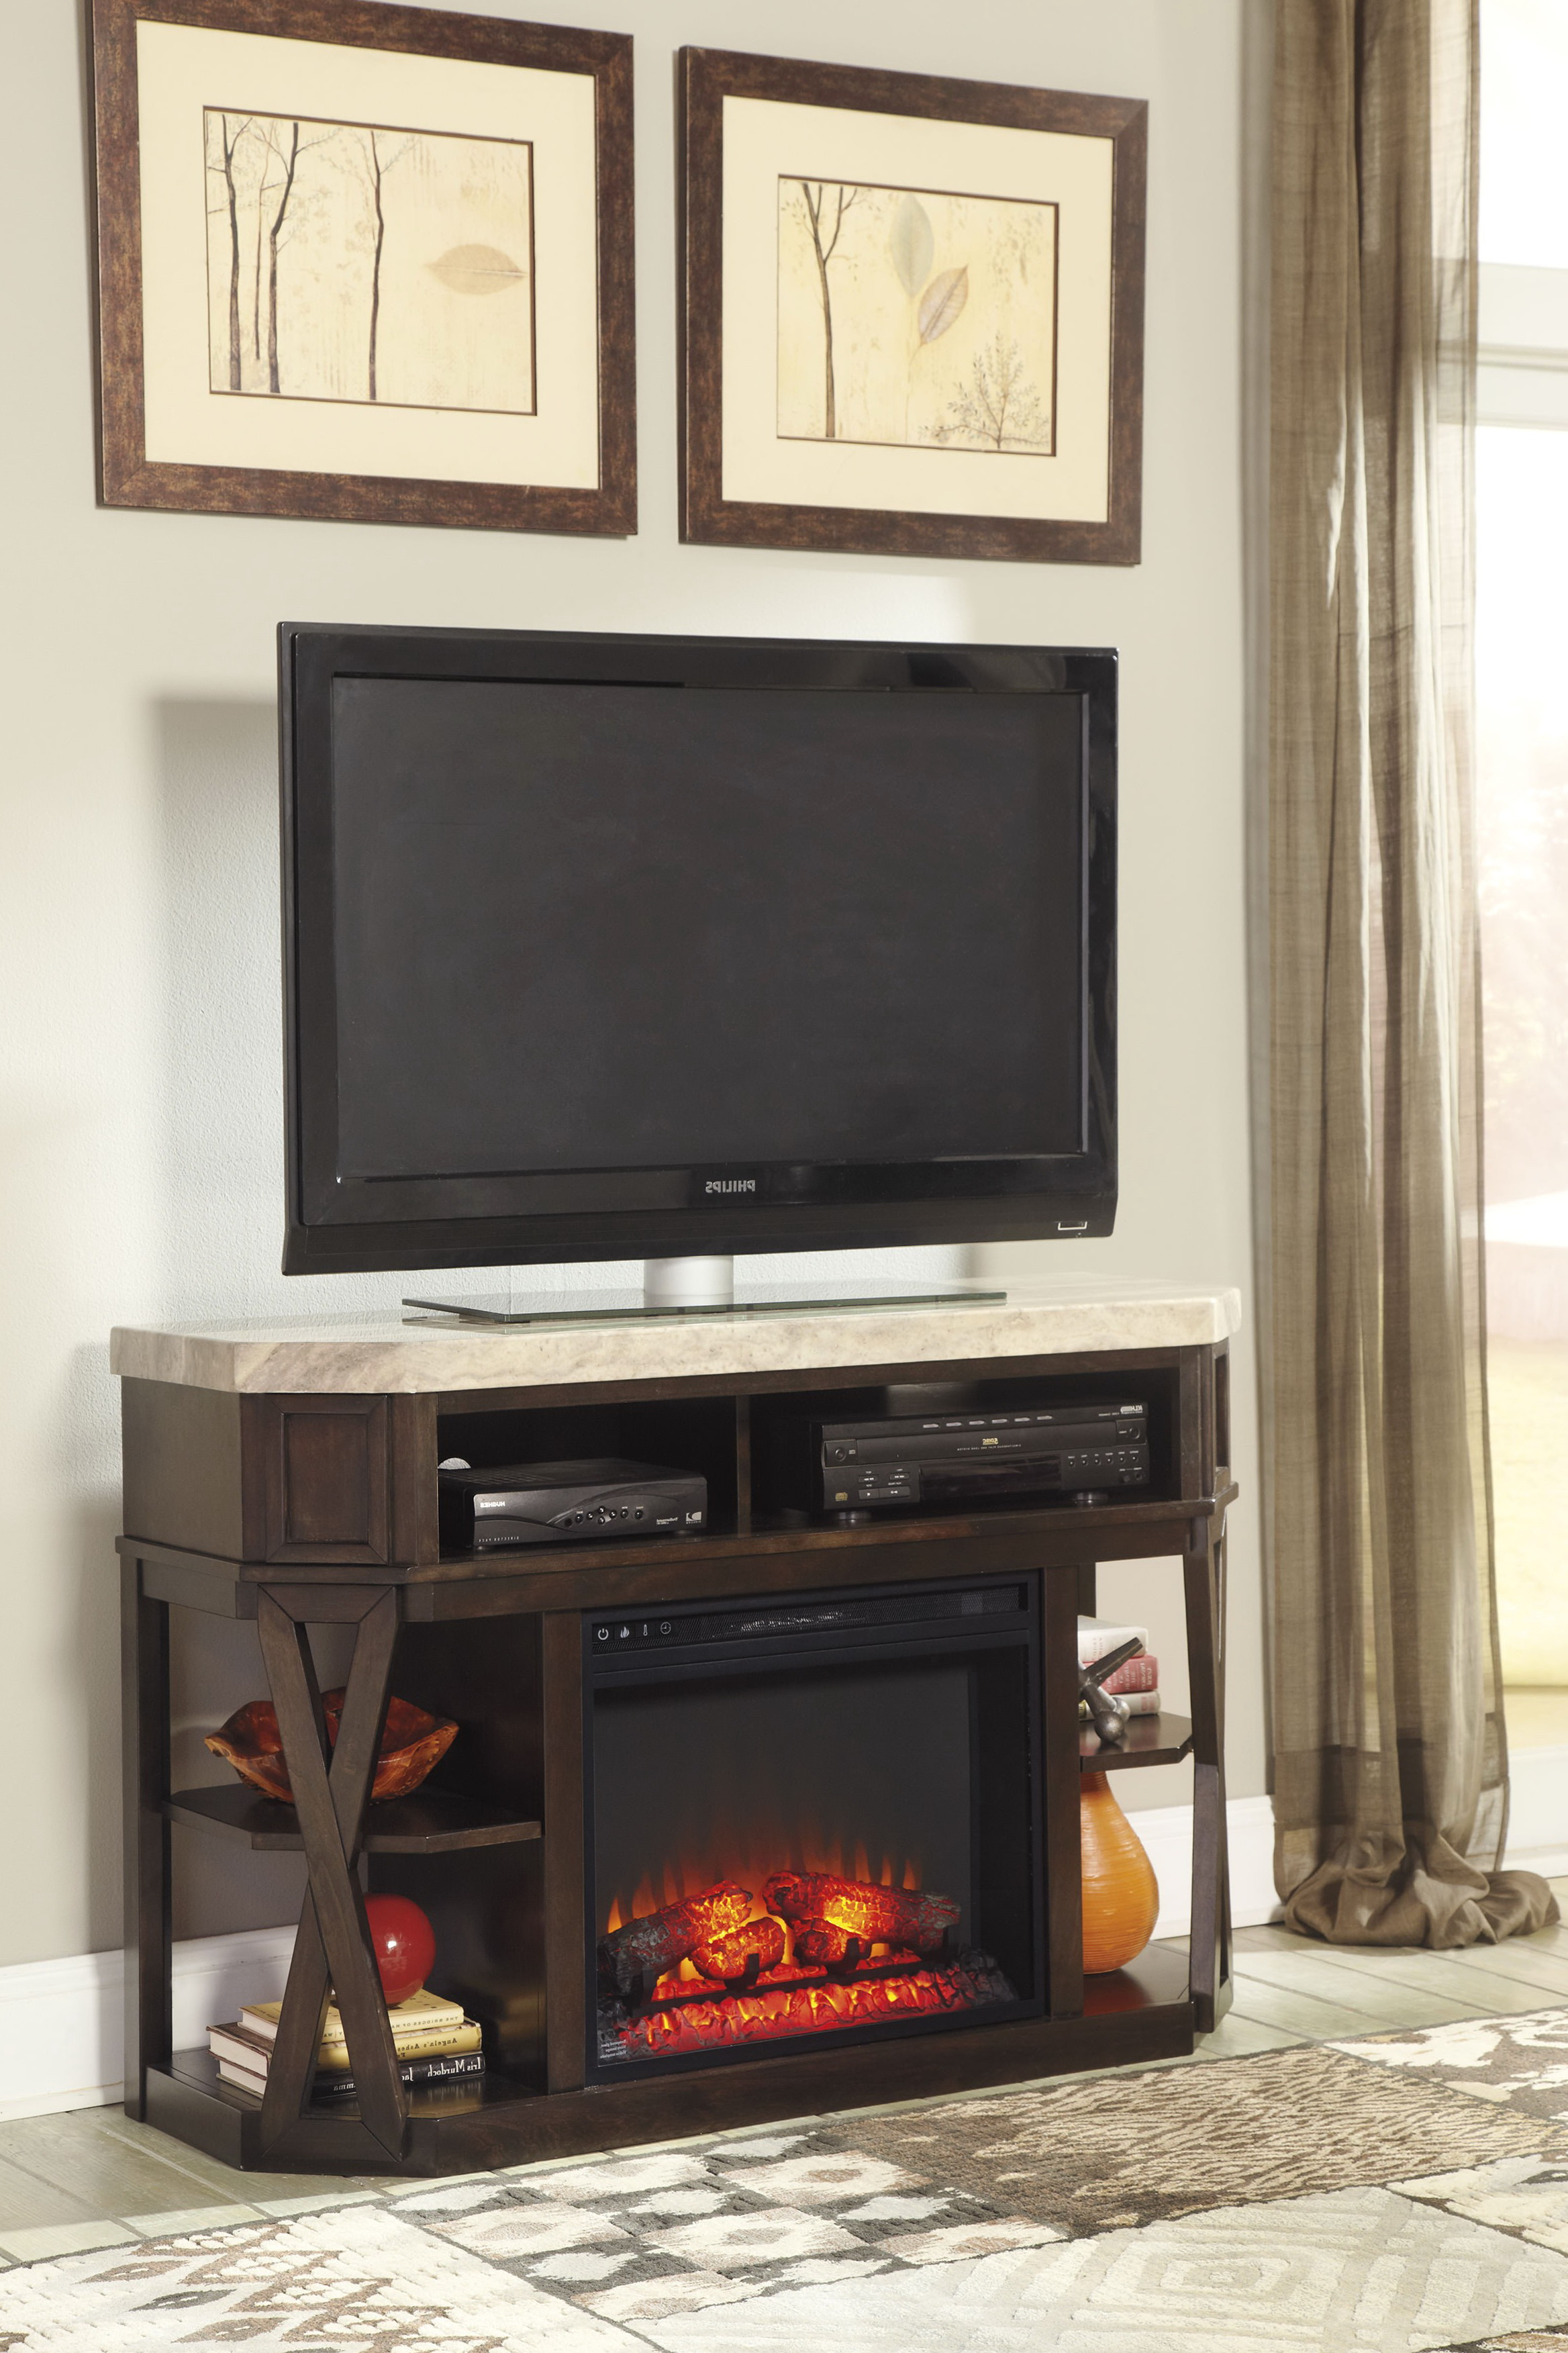 Ashley Furniture Fireplace Entertainment Center | Home ...